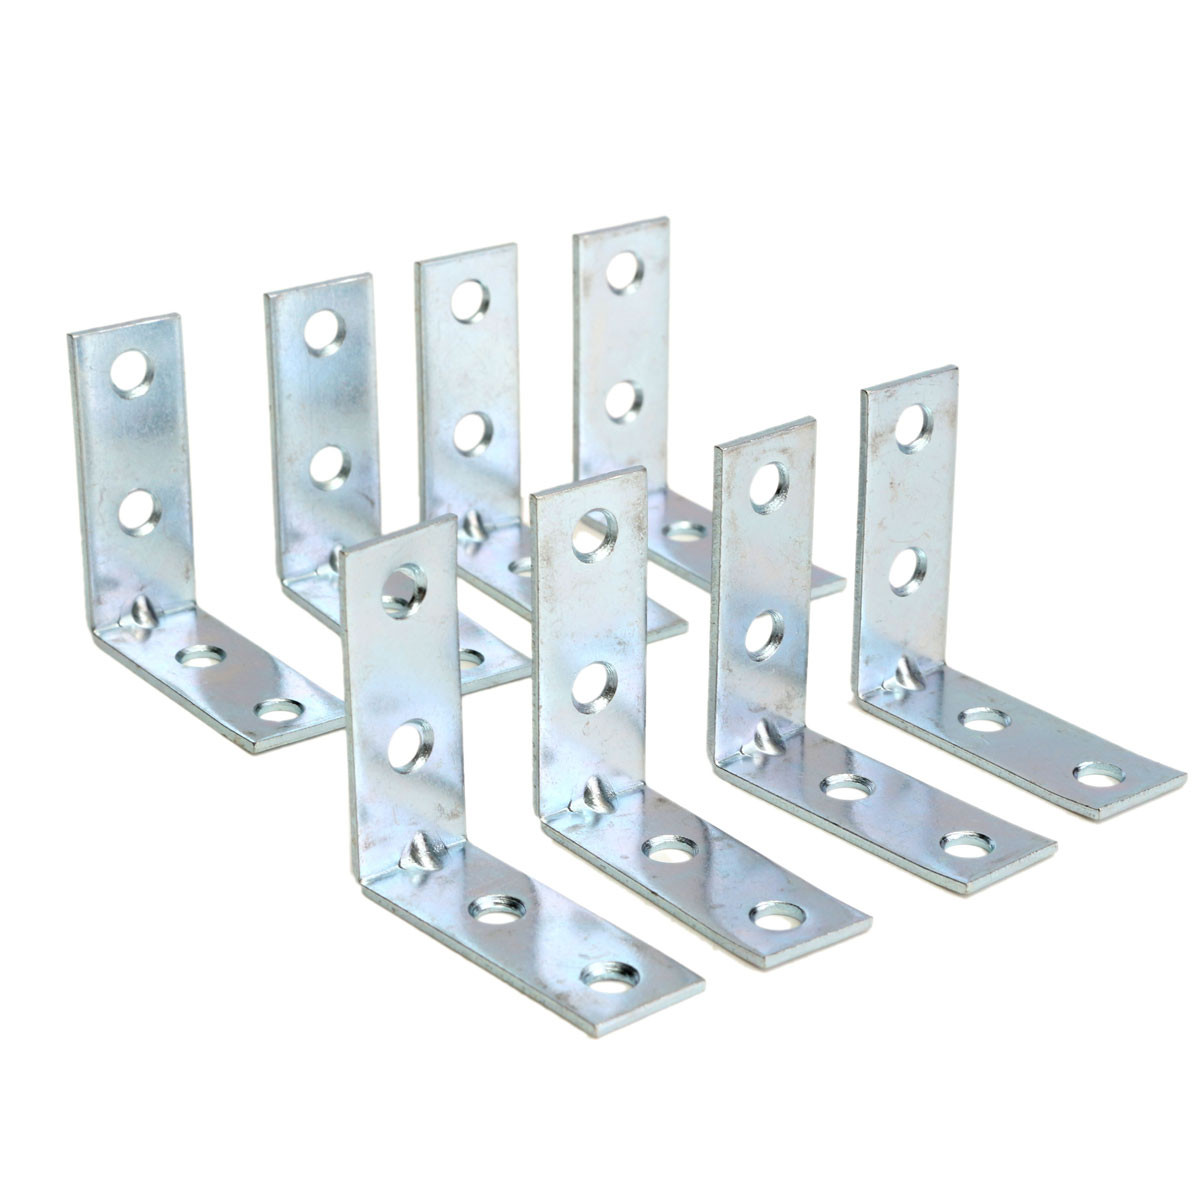 8pcs 40mm l shaped right angle corner support fixing for House brackets